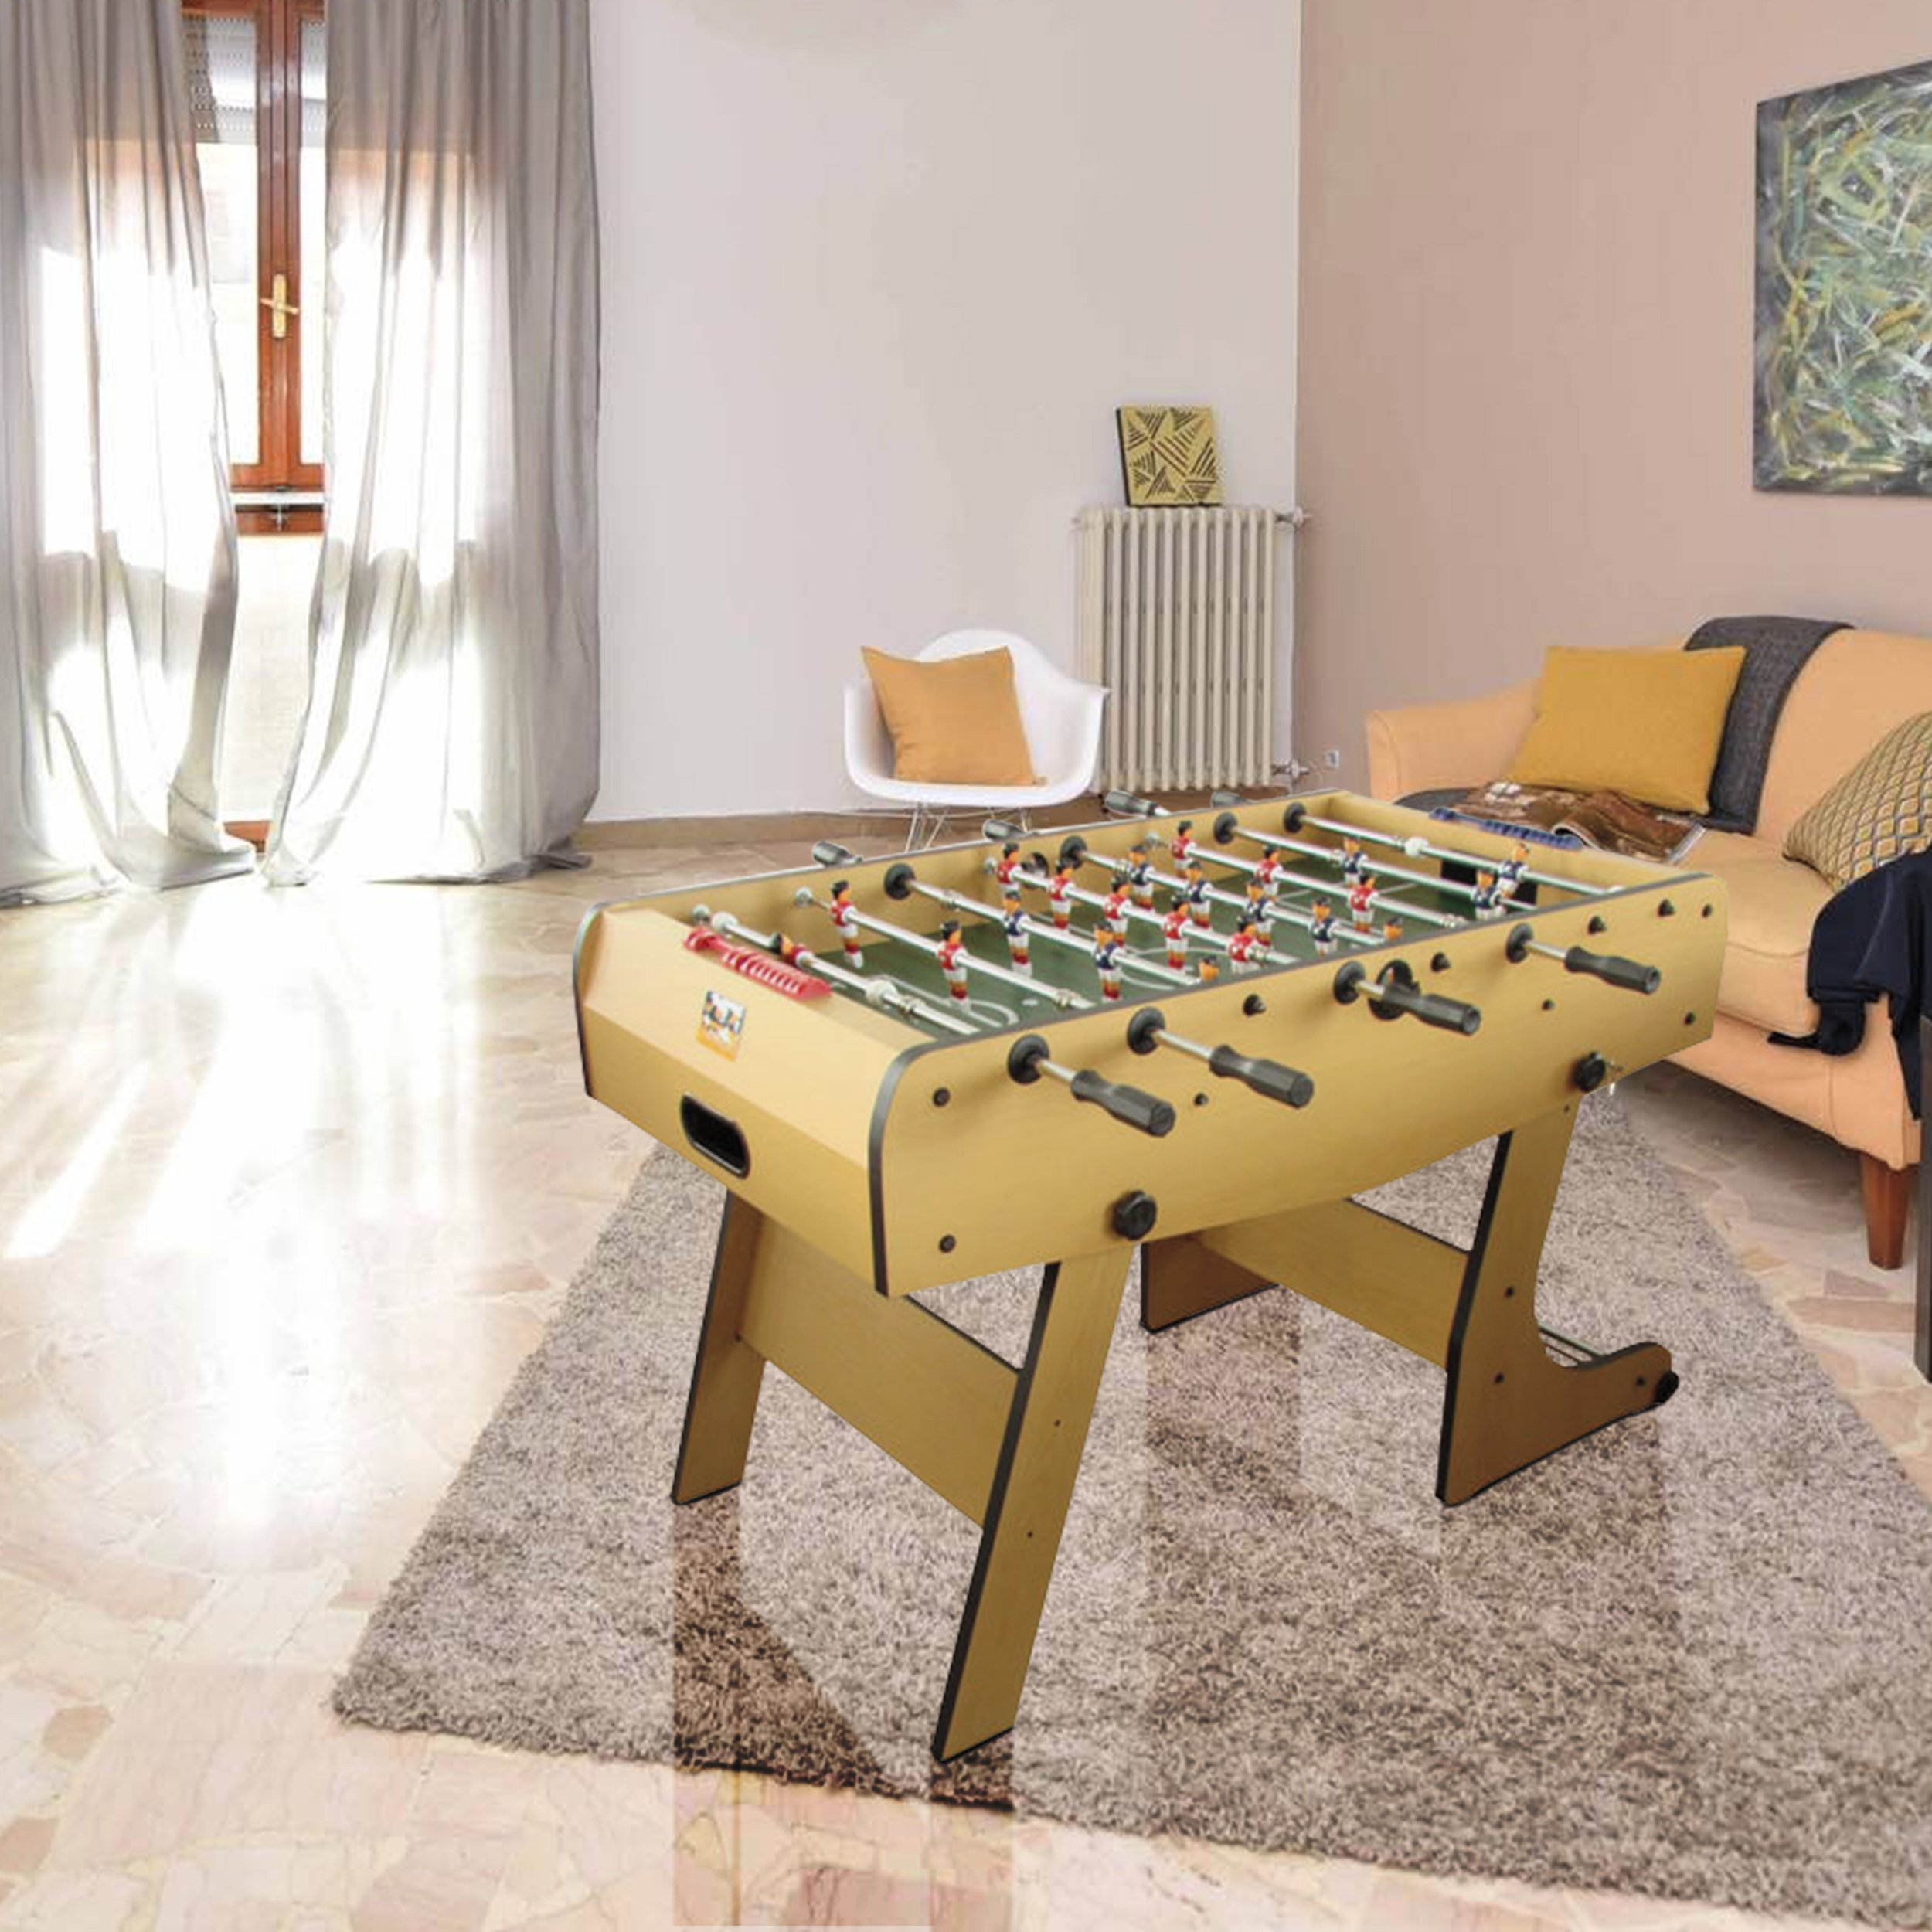 René Pierre Folding Foosball Table   Winjoy. Designed With Safety  Telescoping Rods With Ergonomic Handles And Single Goalies   WINJOY U003c  Foosball U003c Toys ...